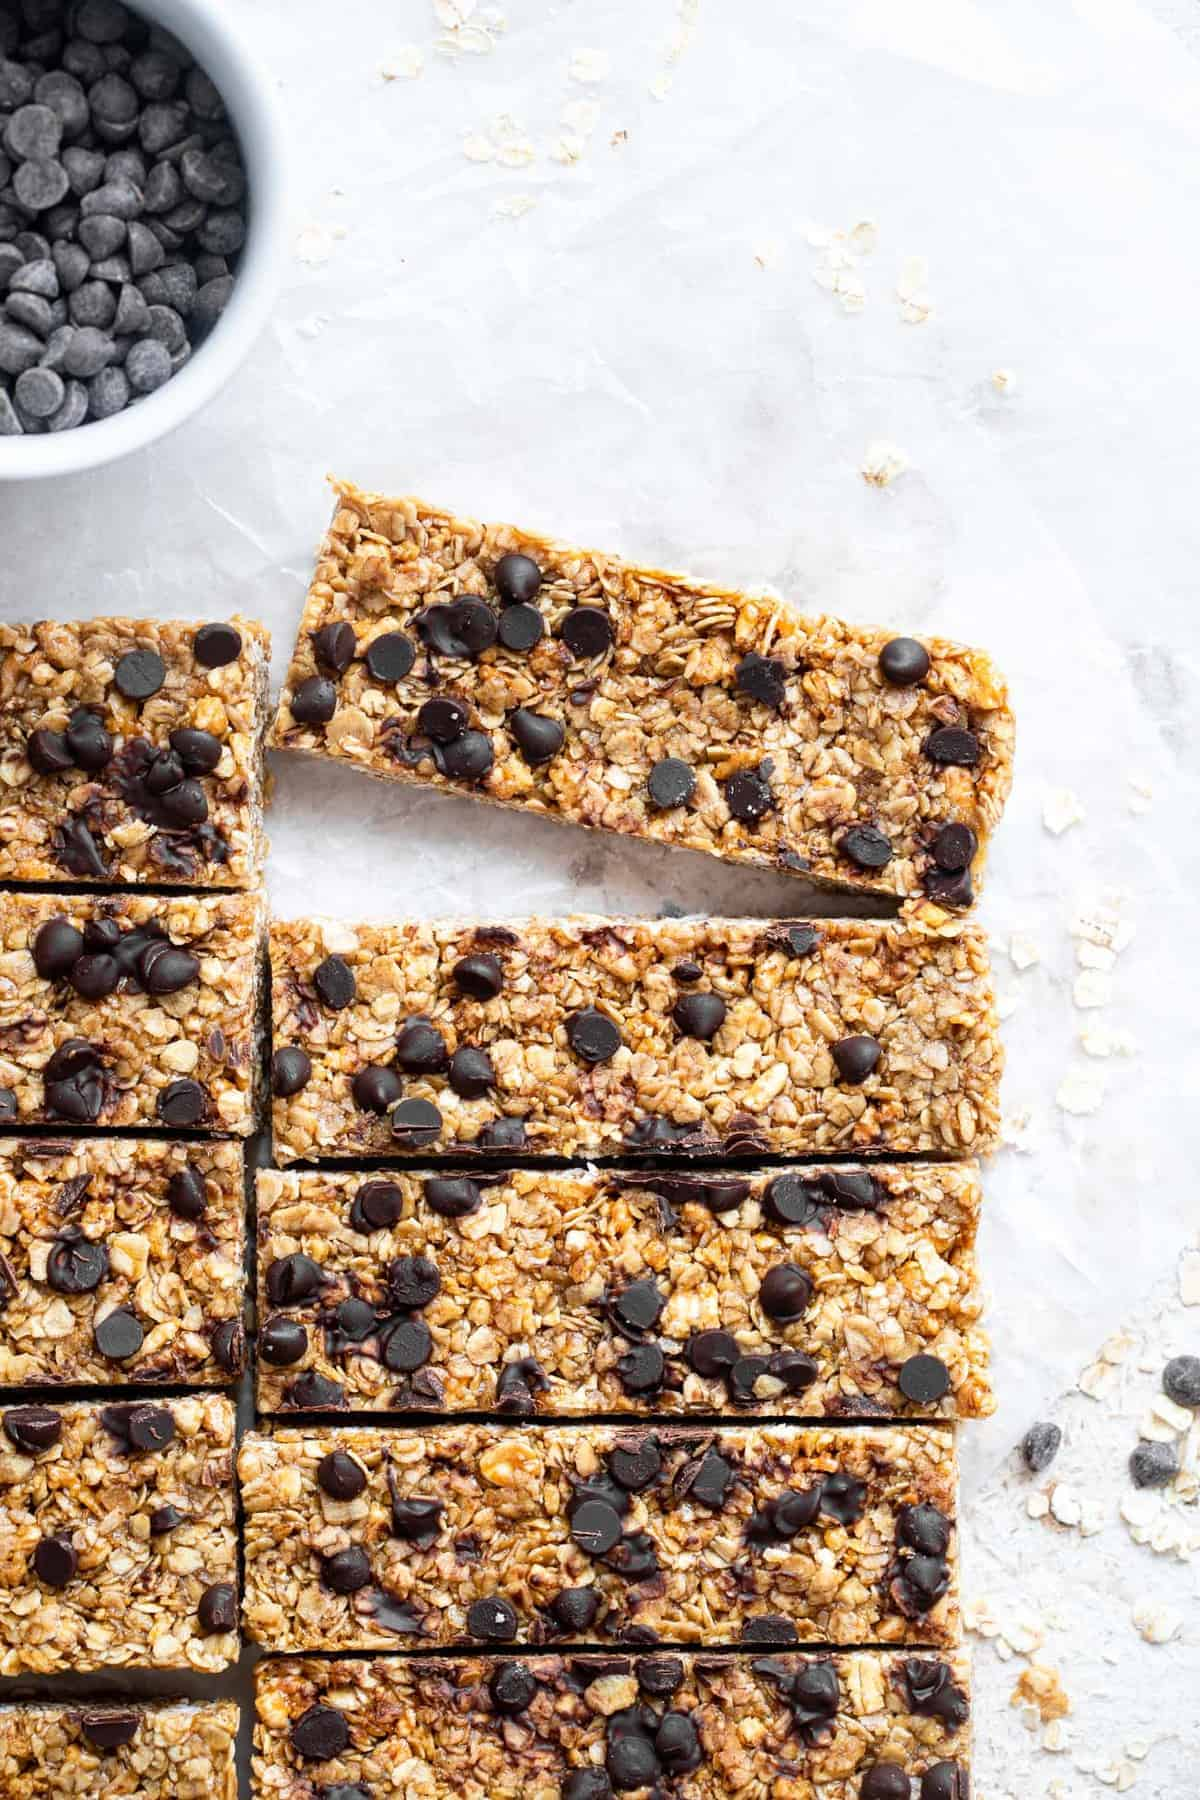 healthy chewy granola bar recipe in a row with one bar removed